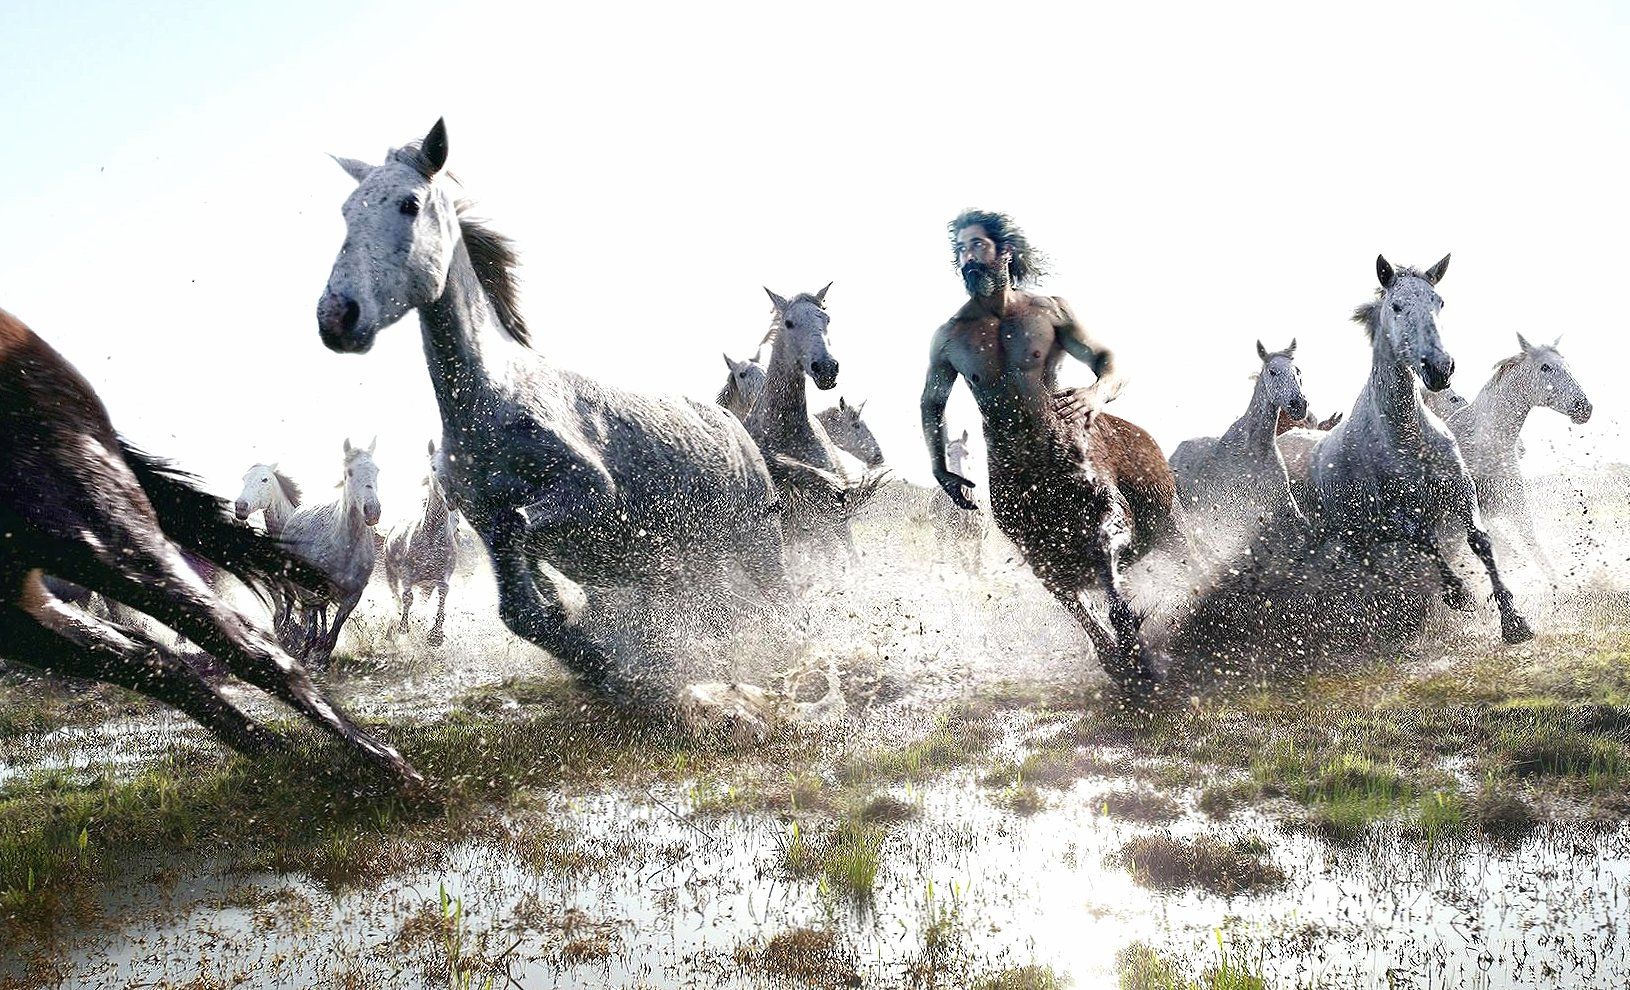 Horse and centaur running digital art wallpapers HD quality